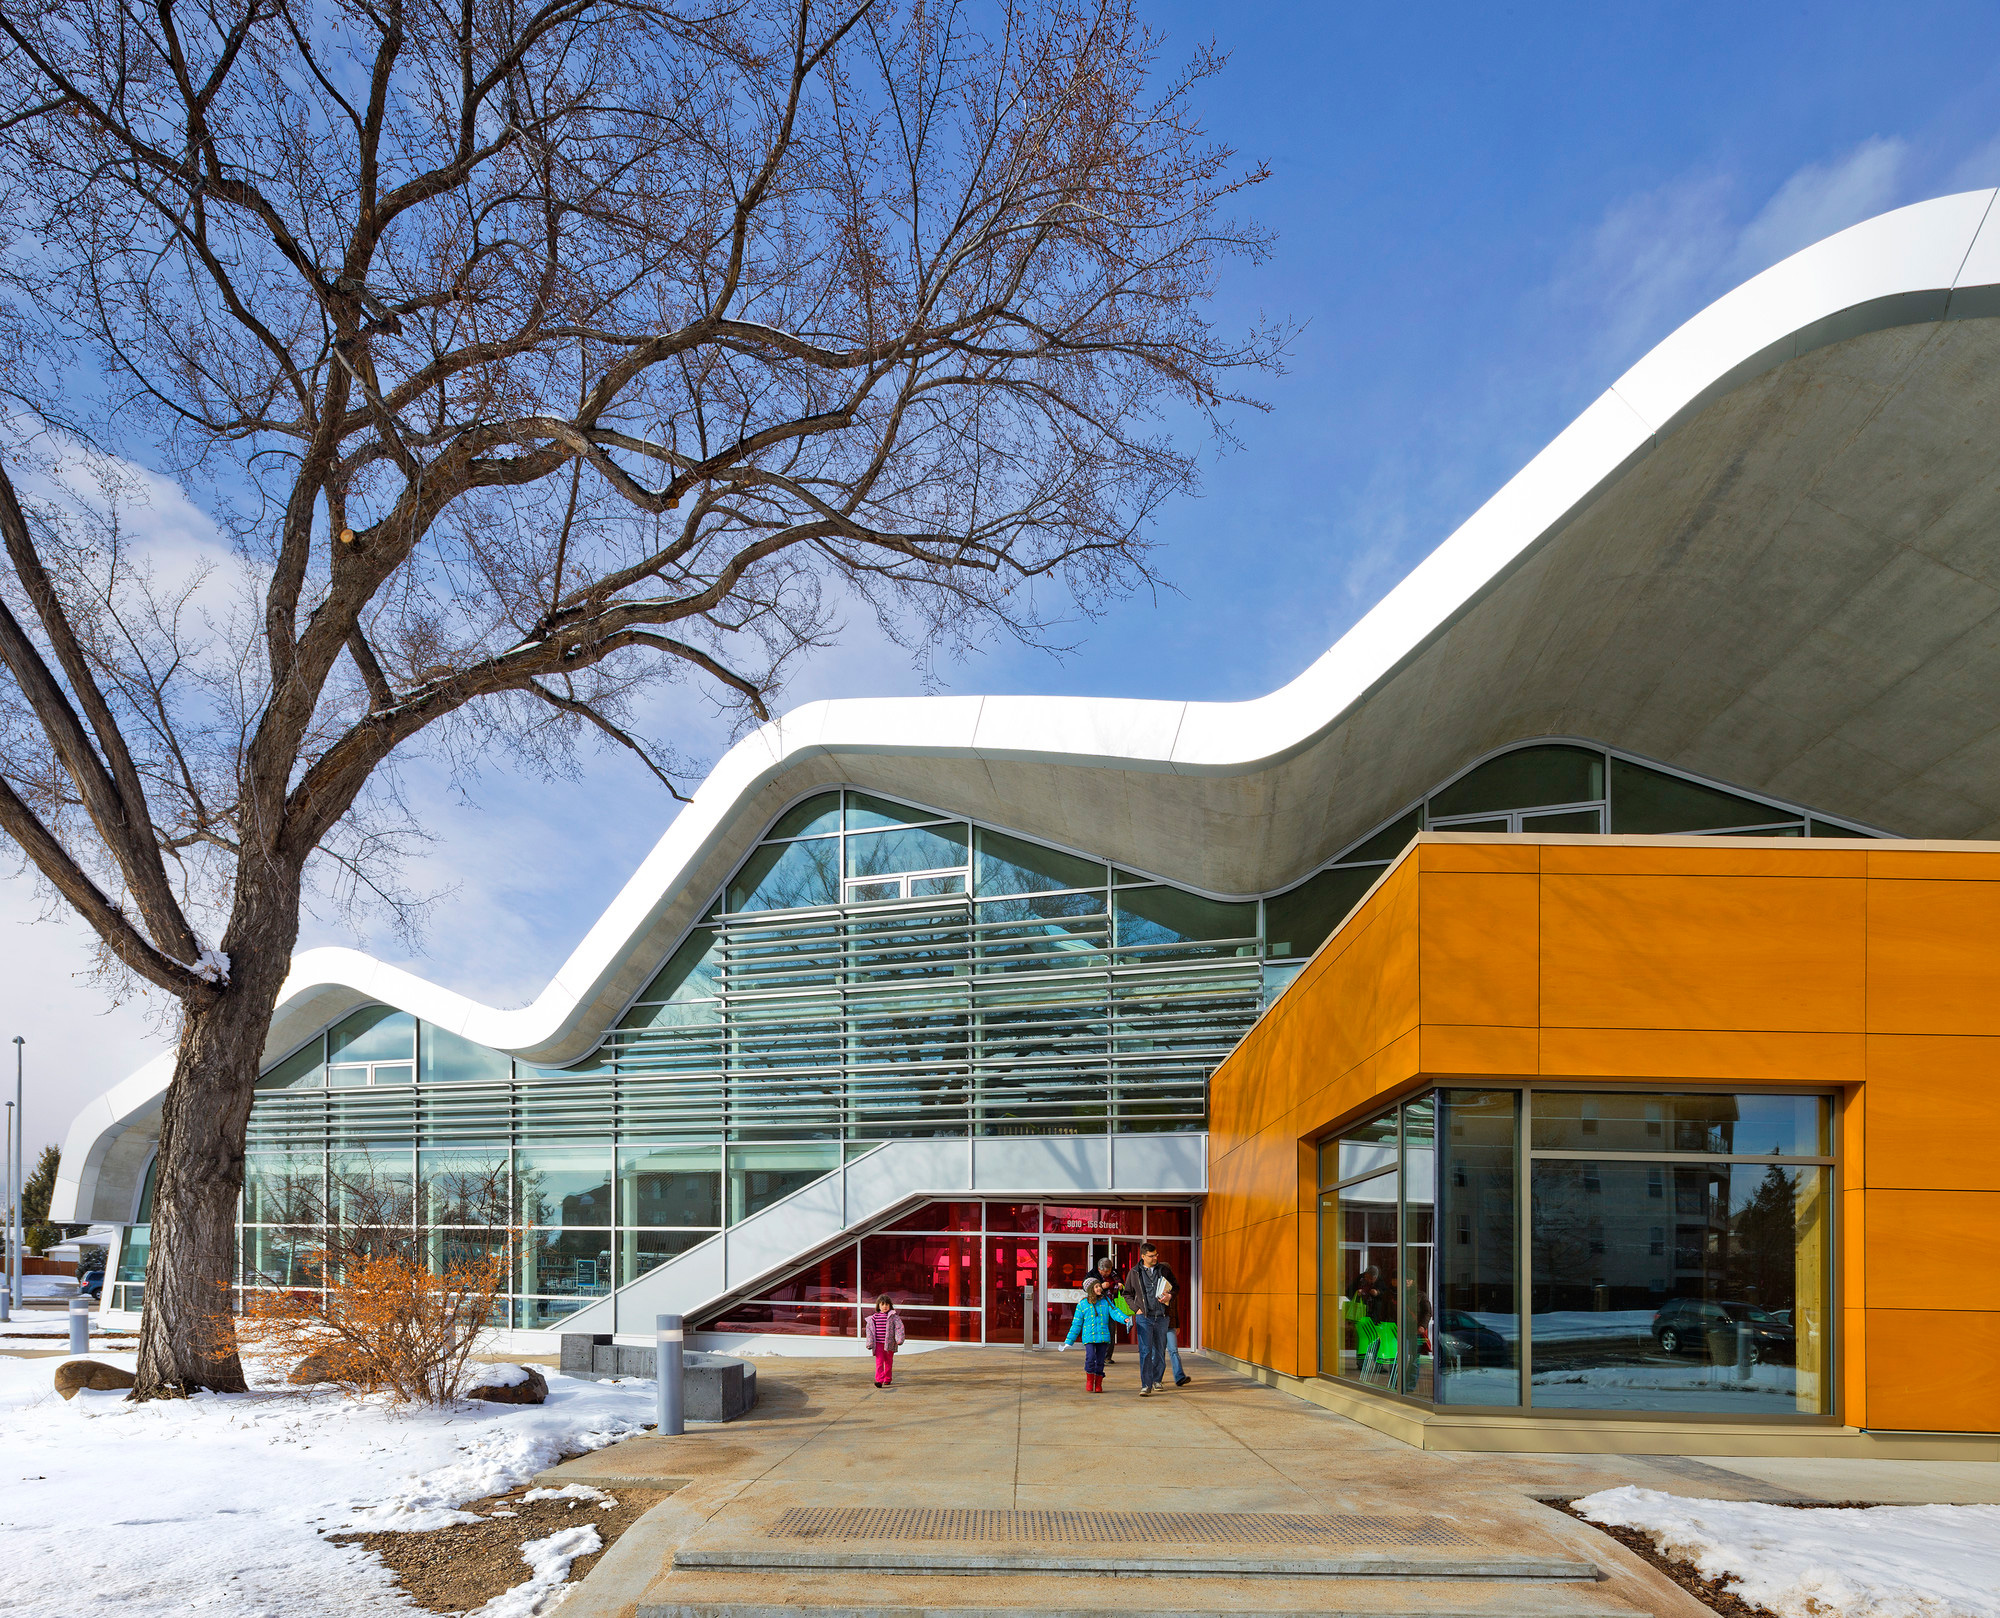 Jasper Place Branch Library, Hughes Condon MarierArchitects, Dub Architects, Alucobond Fascia ACM, Photography by Gerry Kopelow